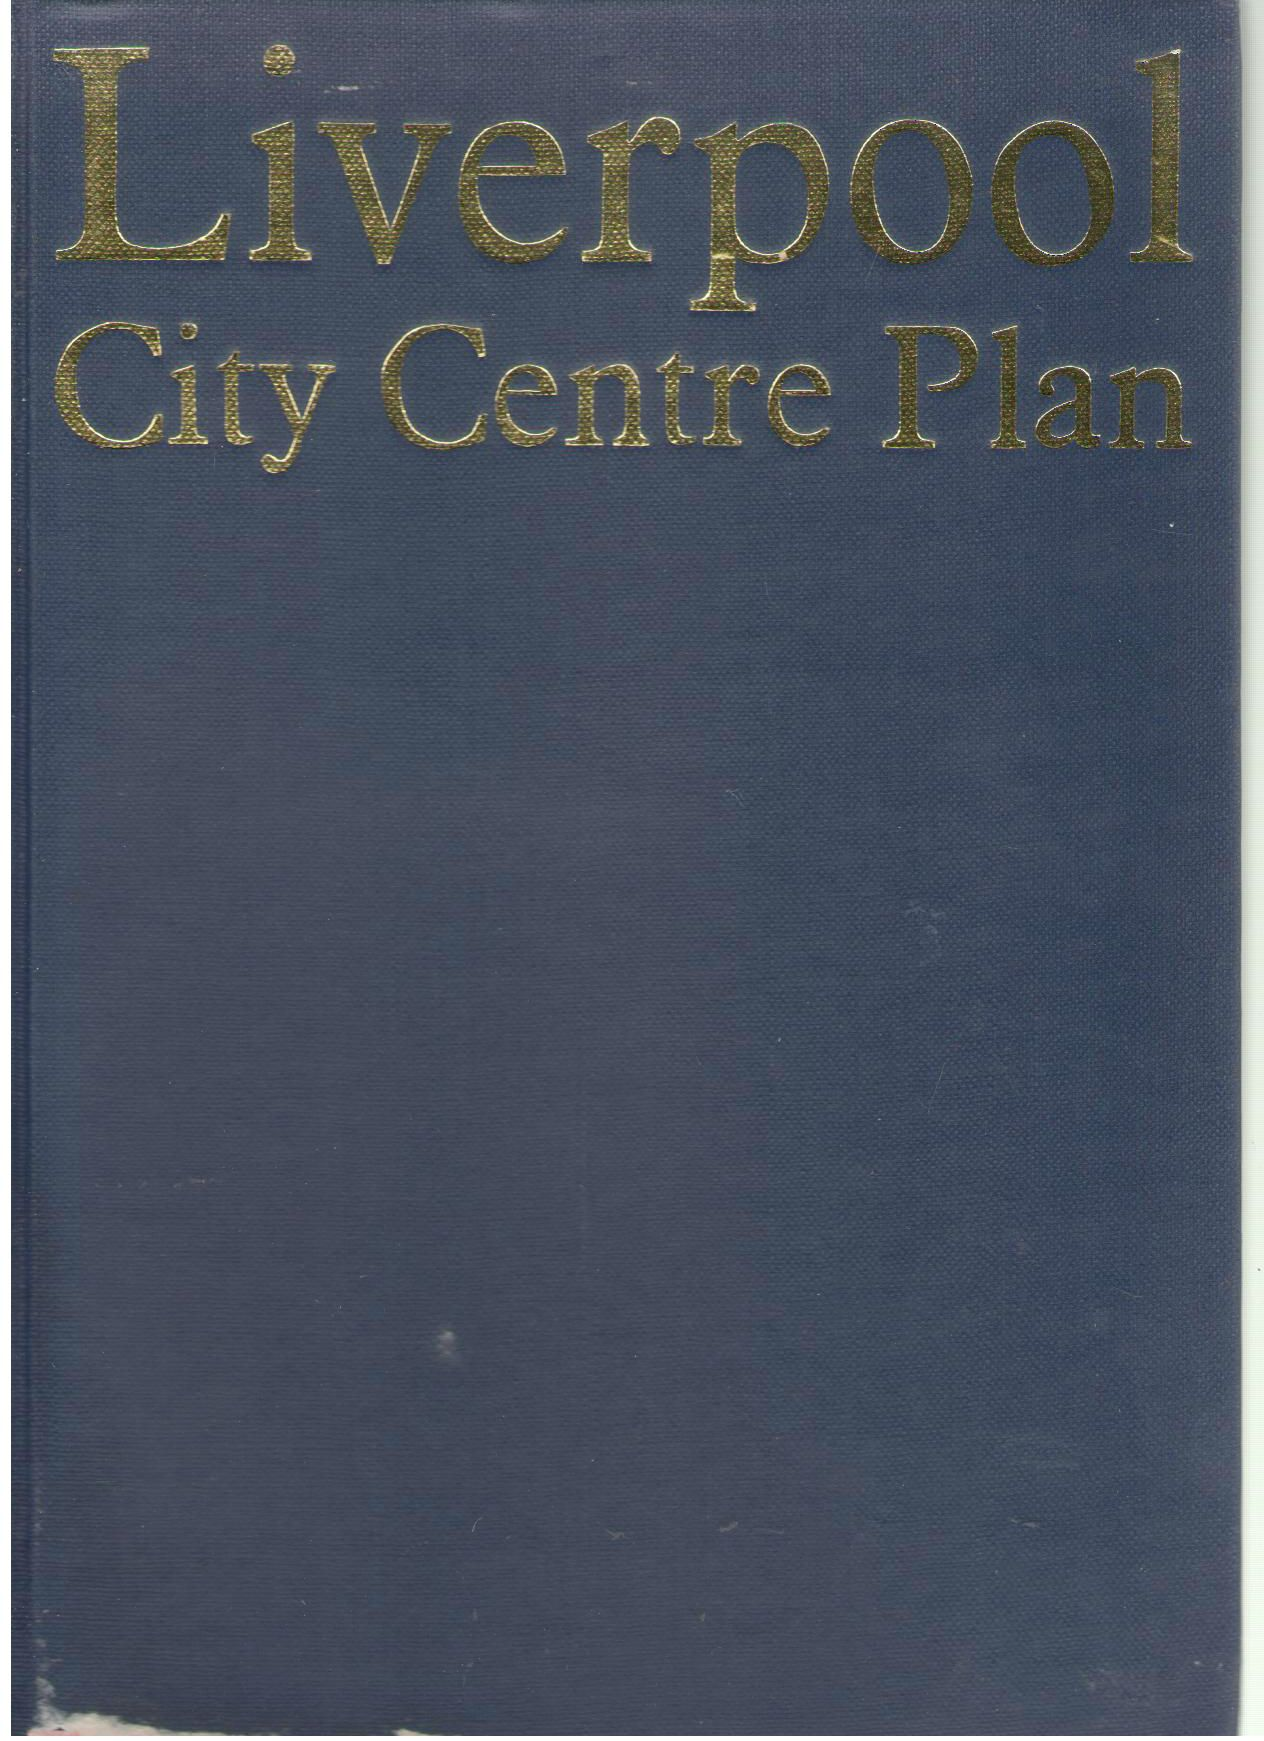 Liverpool City Centre Plan, City Centre Planning Group